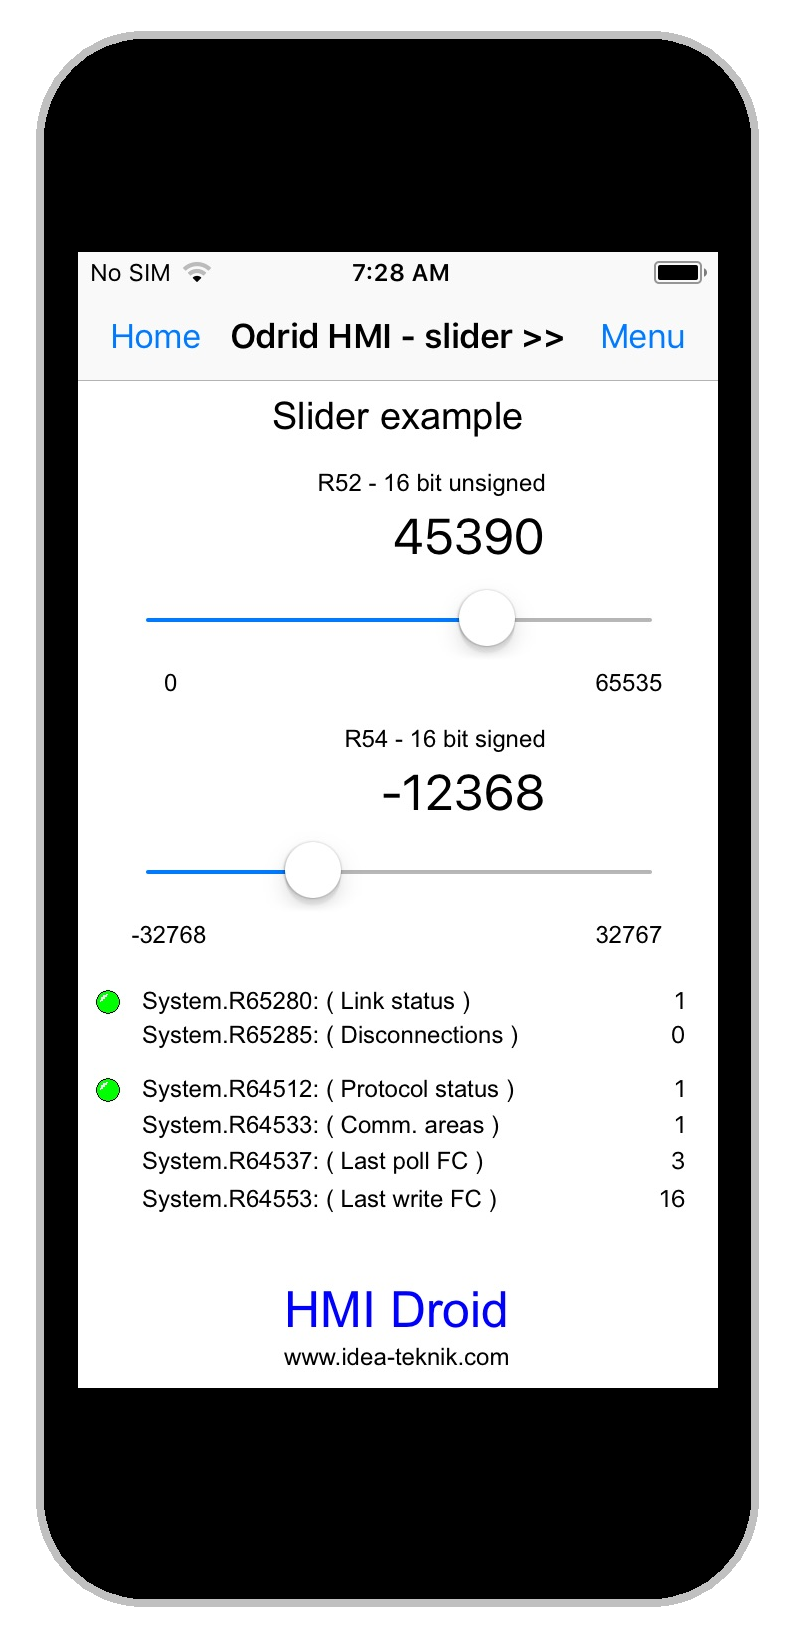 HMI Droid for iOS - Slider example